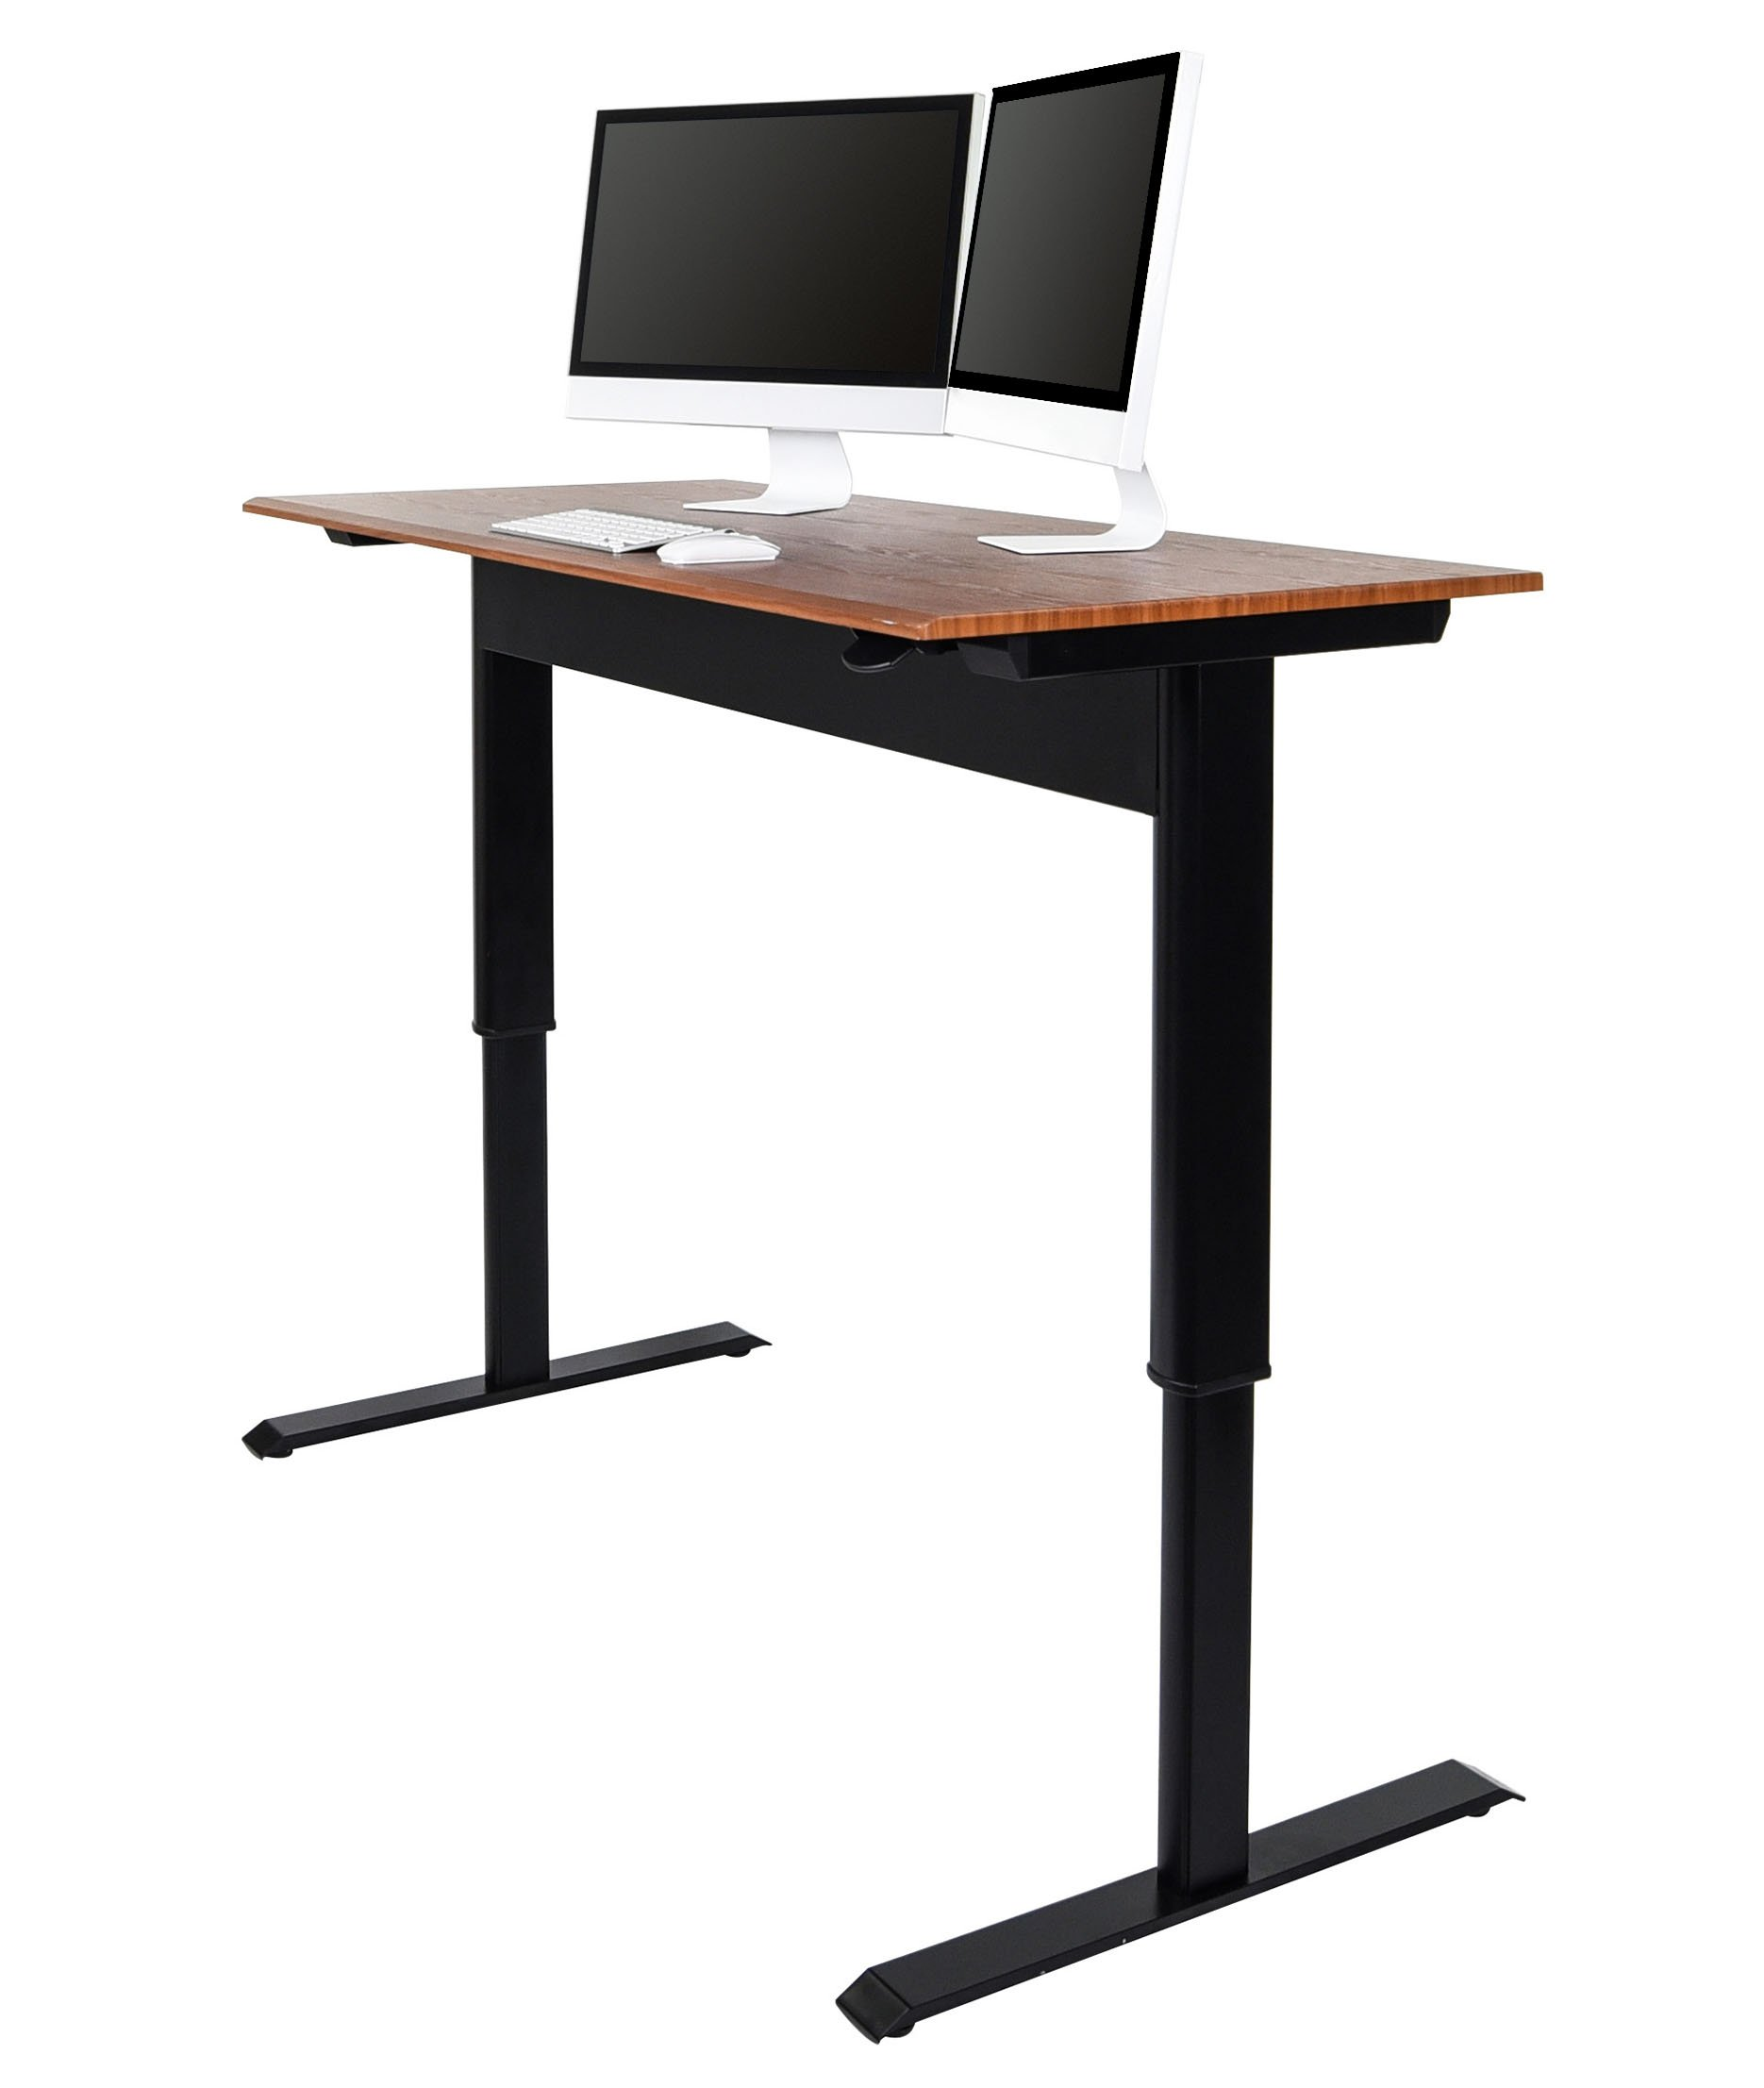 Pneumatic Adjustable Height Standing Desk (48'', Black Frame / Teak Top)